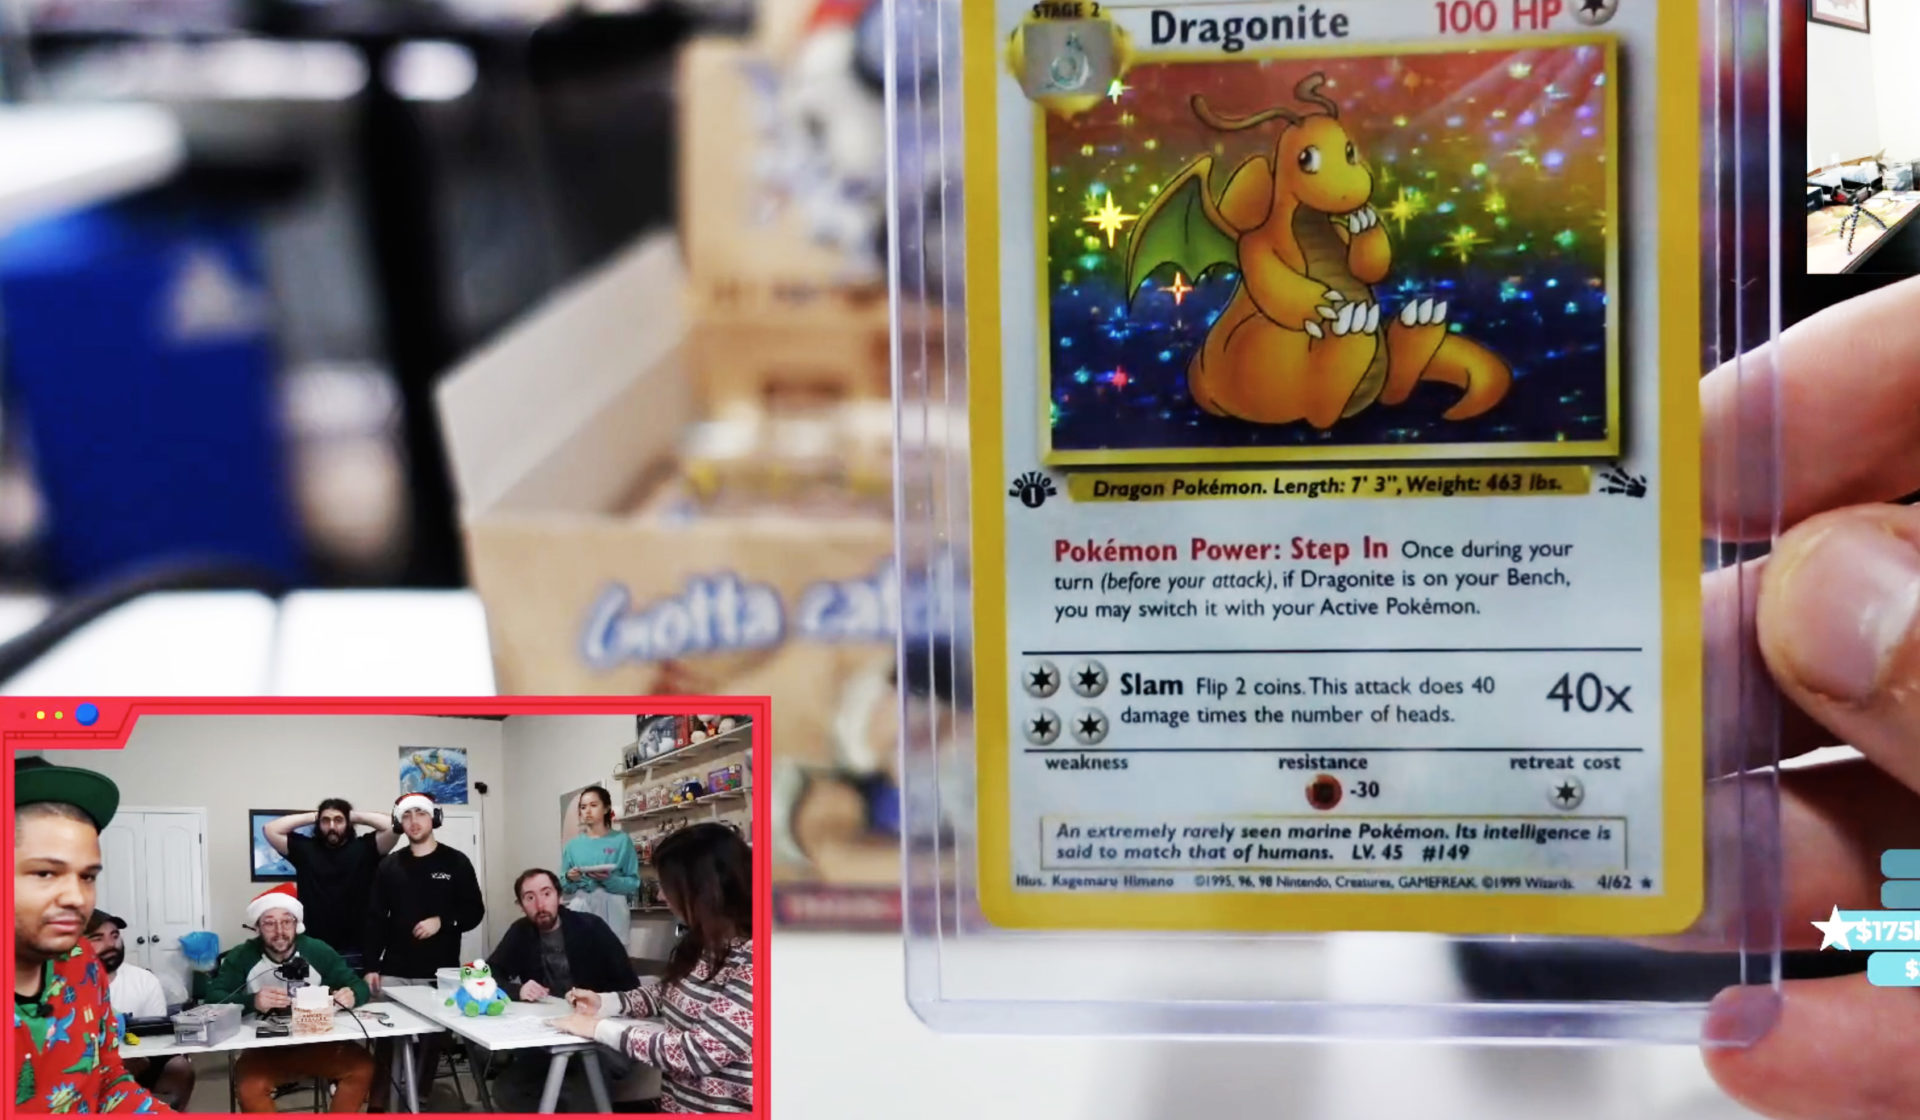 Twitch streamers react to Dragonite card during Pokemon broadcast.